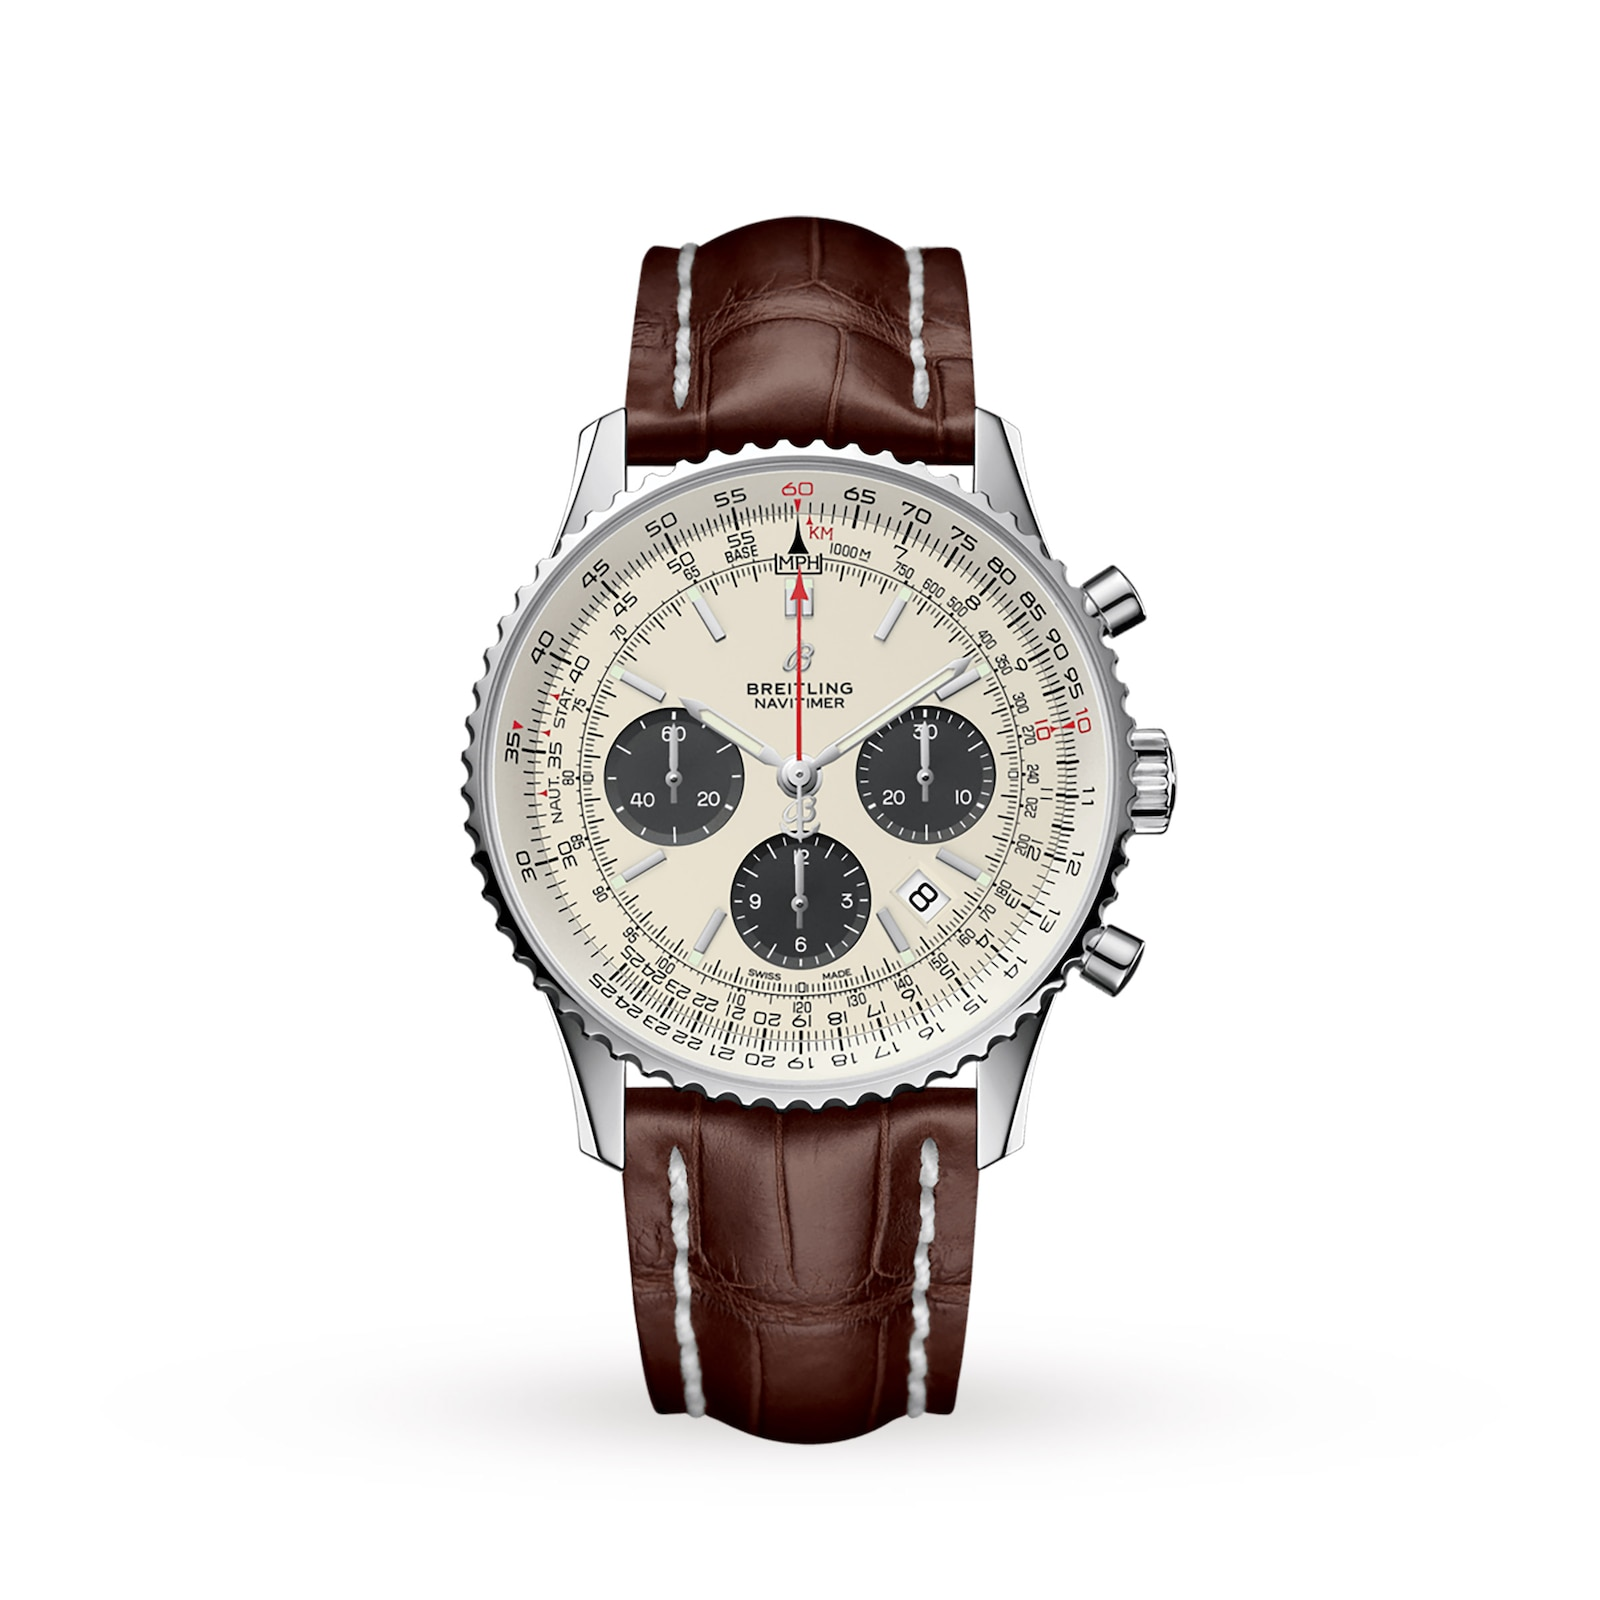 Breitling Navitimer 1 B01 Chronograph Mens Watch